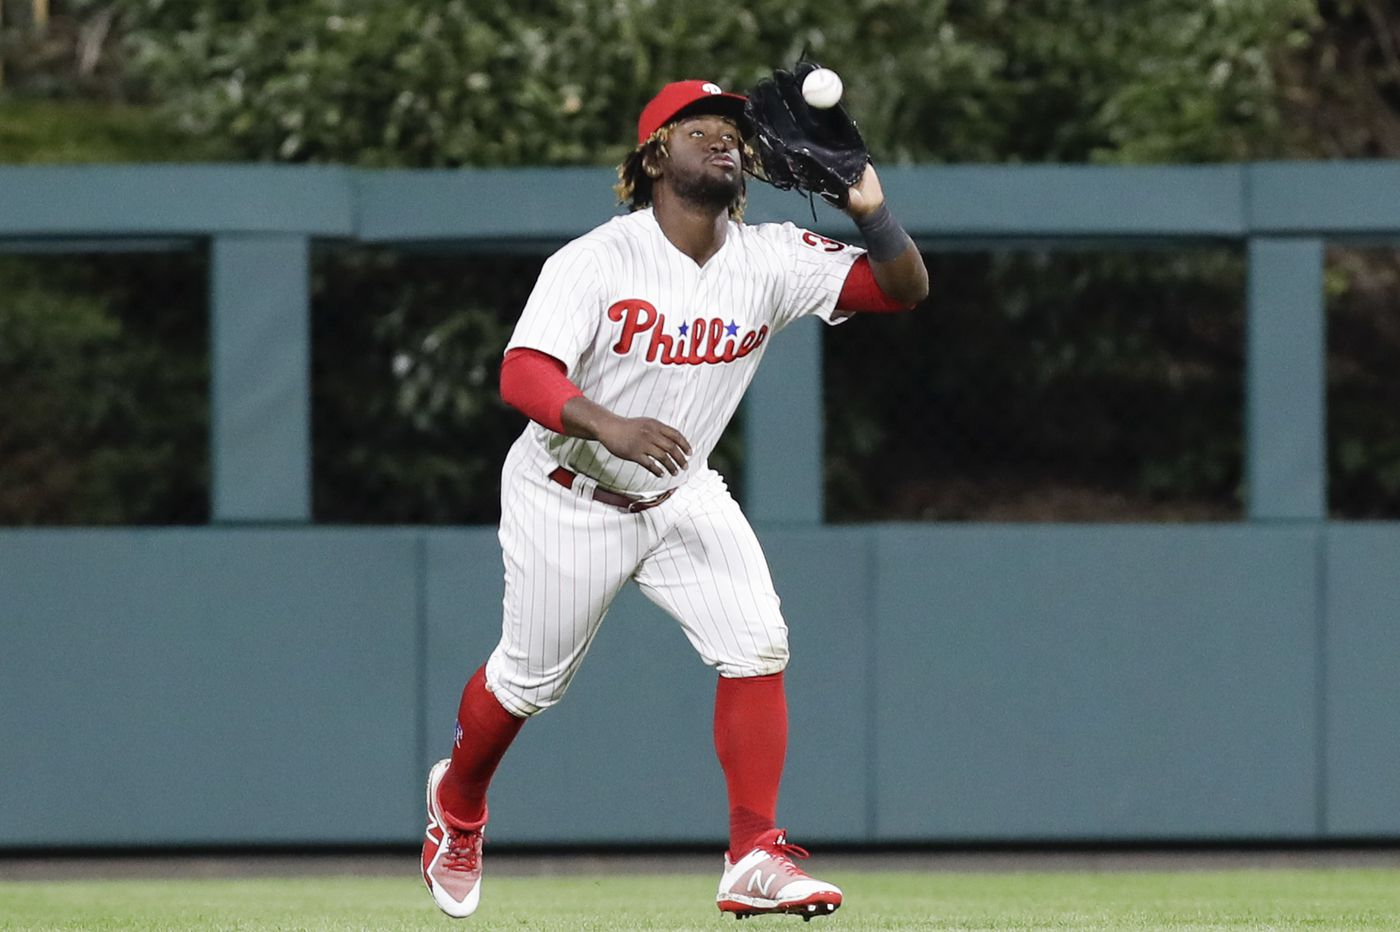 If the Phillies sign Bryce Harper, what happens to the rest of the outfield?